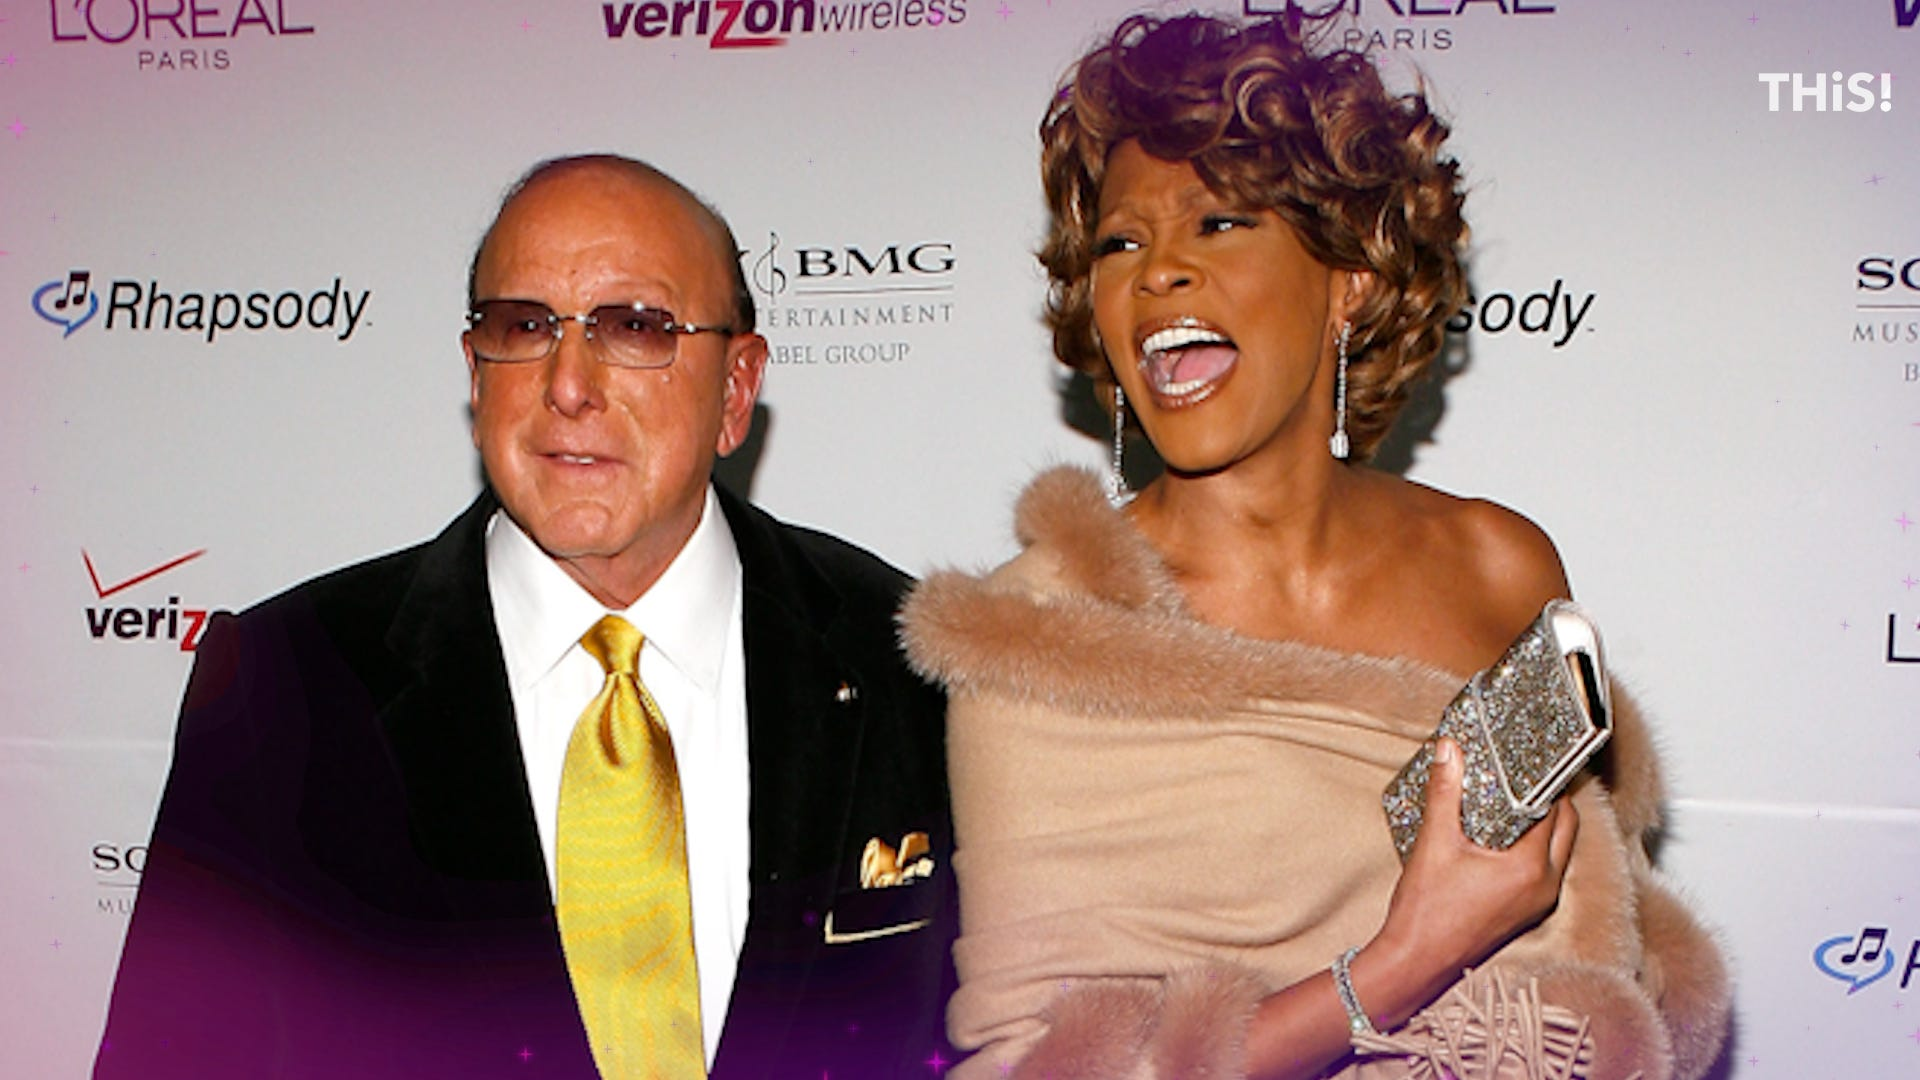 Clive Davis reveals his goal for the Whitney Houston biopic and who H.E.R. reminds him of